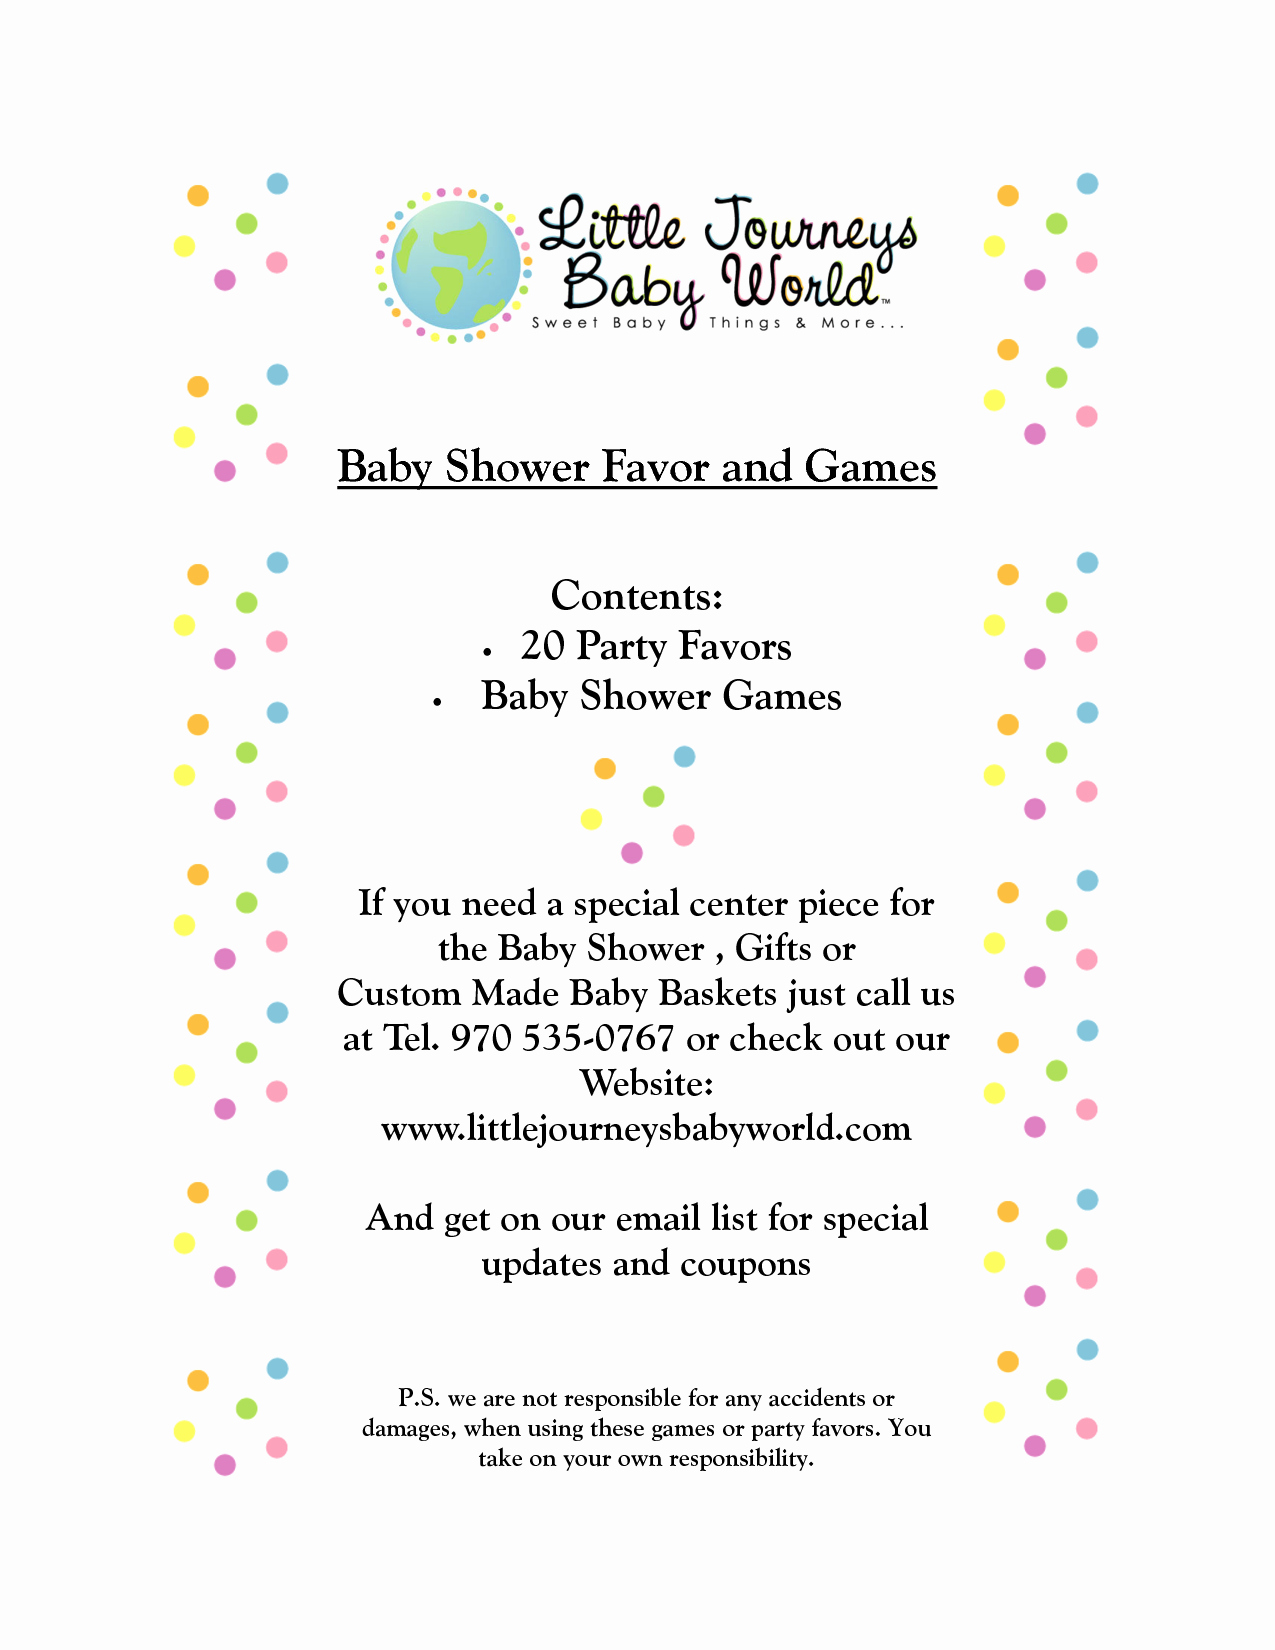 Baby Shower Programs Template Lovely What to Write In Image Brilliant Ideas Baby